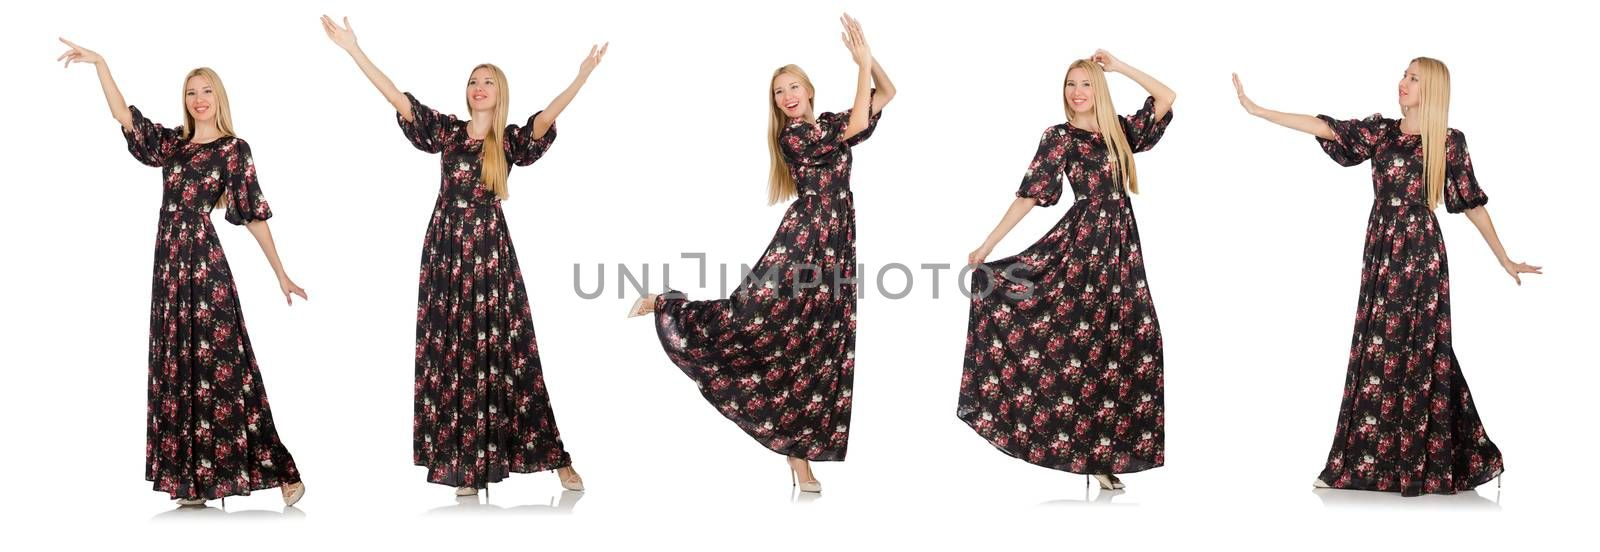 Pretty woman in romantic dress isolated on white